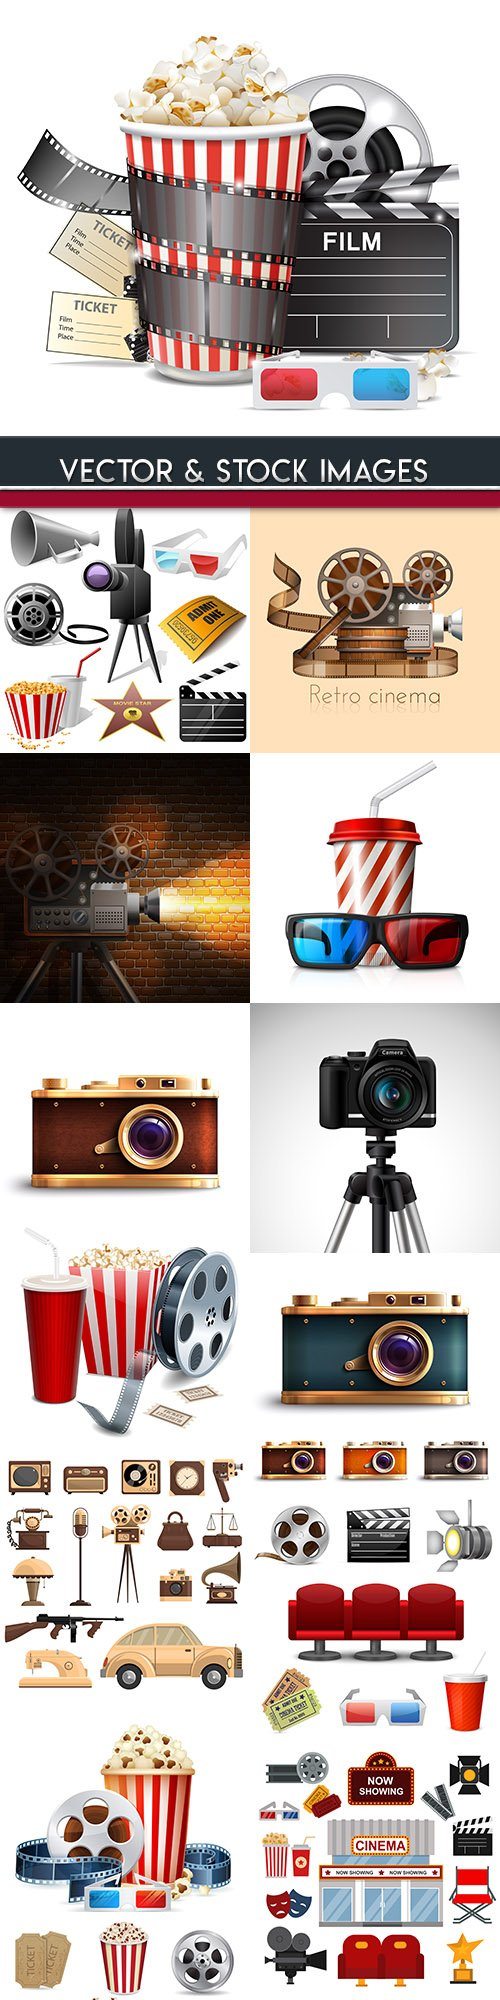 3d cinematography classic film and cinema objects